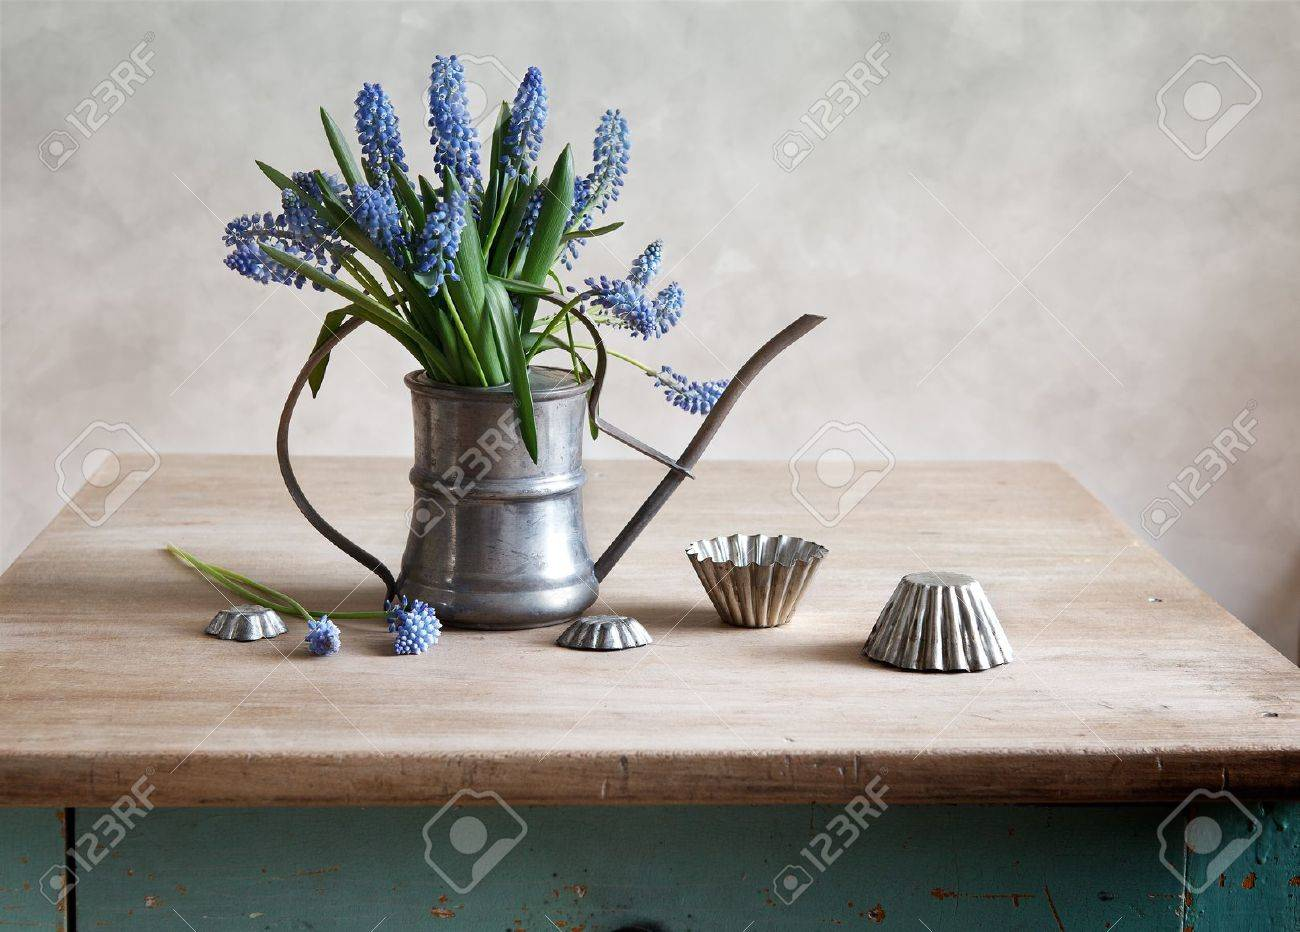 Still life with grape hyacinths arranged in an antique watering can with old moulds on a rustic wooden kitchen table Stock Photo - 13725283